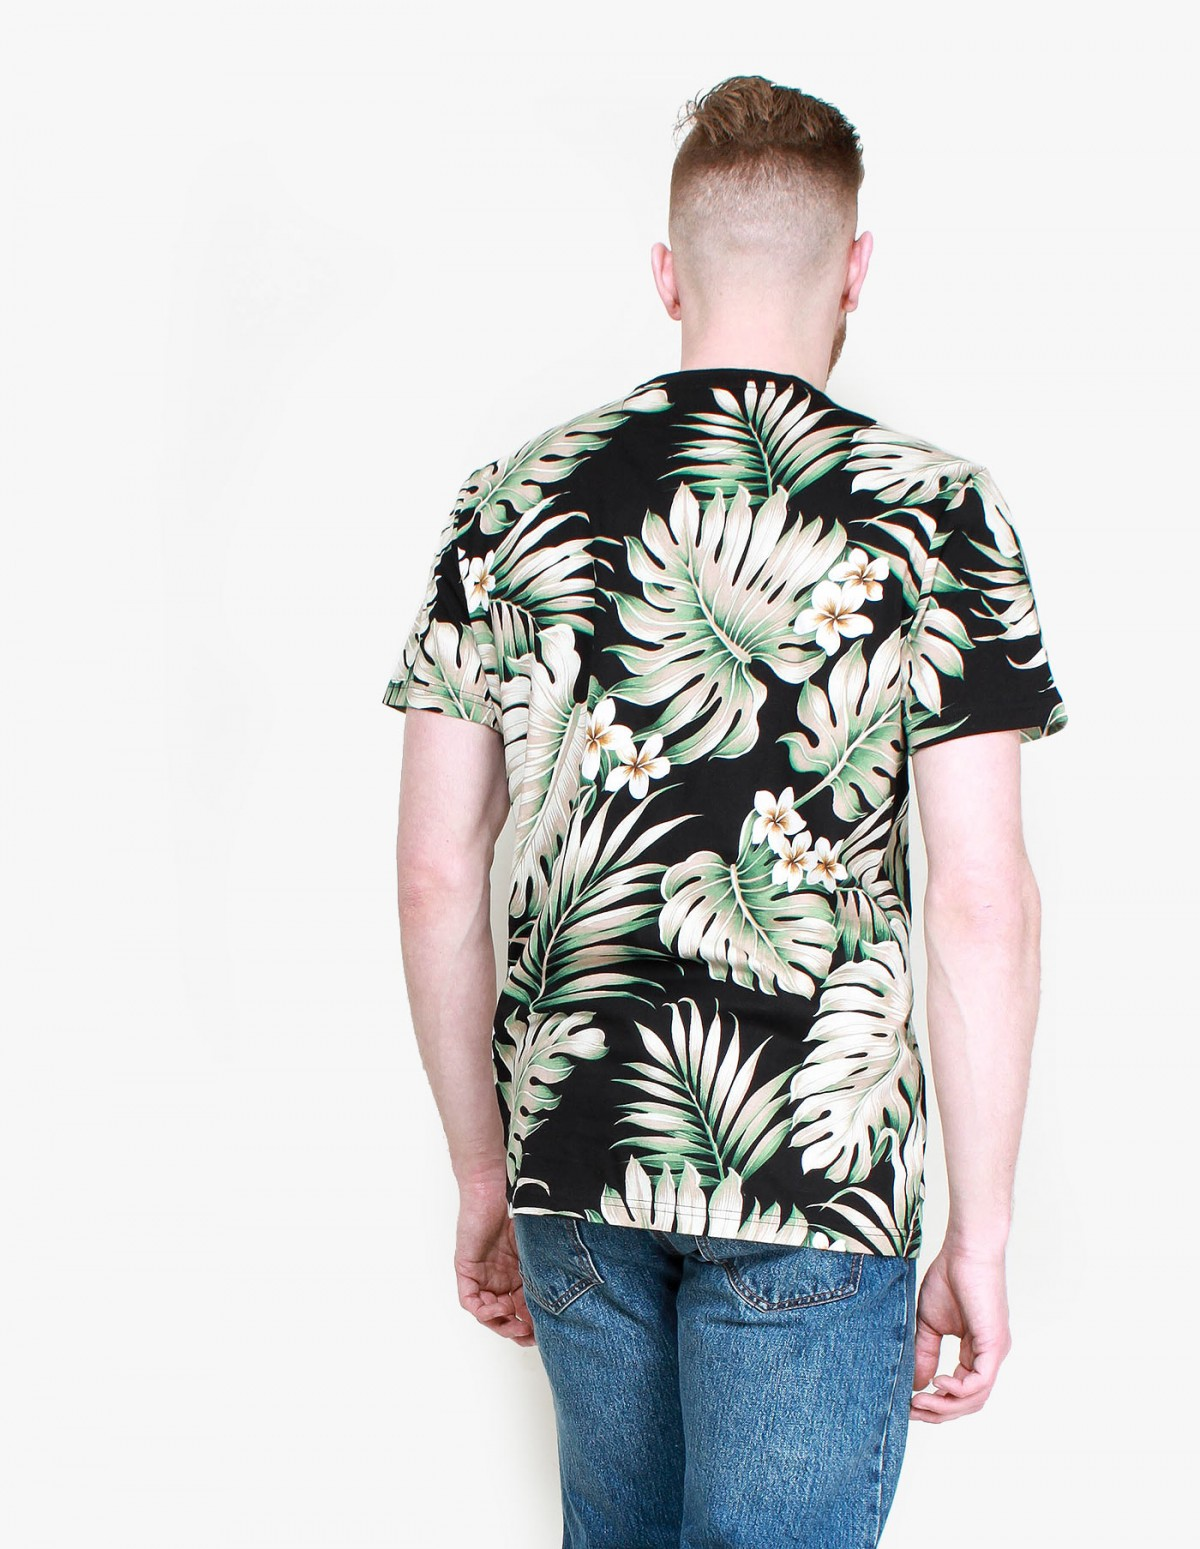 Penfield Kula T-Shirt in Black Palm